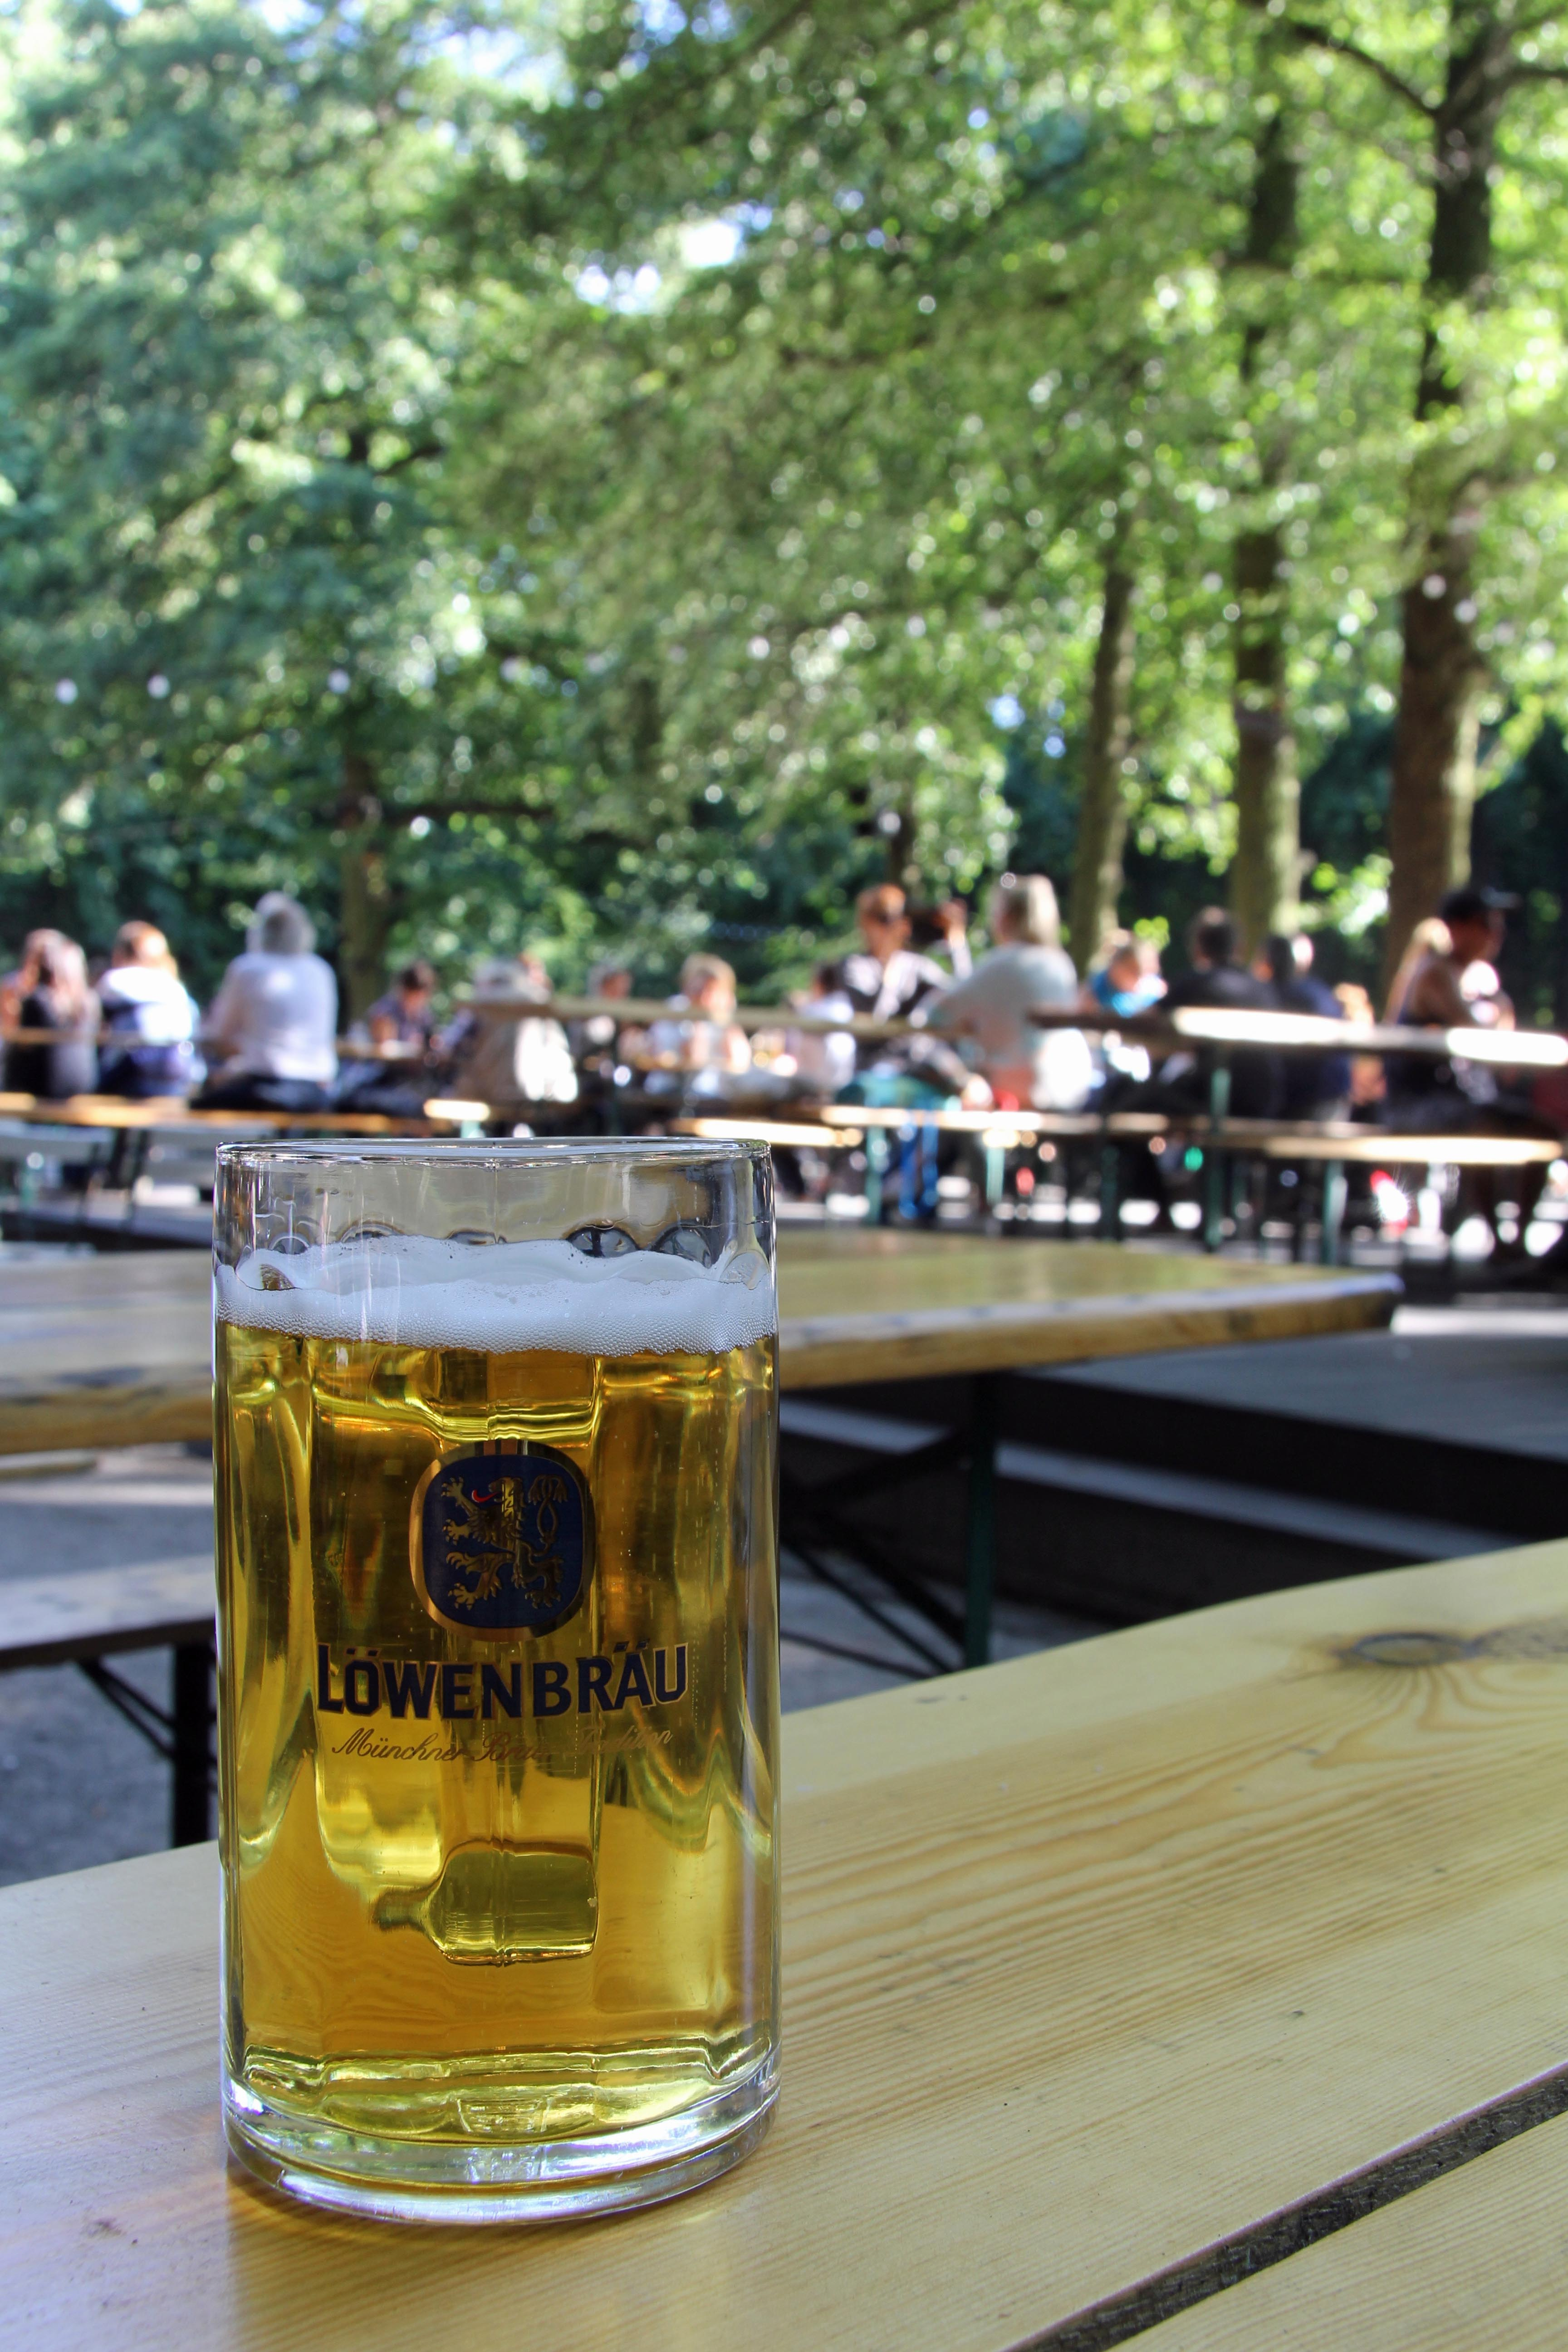 Löwenbräu at the Biergarten of Café am Neuen See in the Tiergarten in Berlin